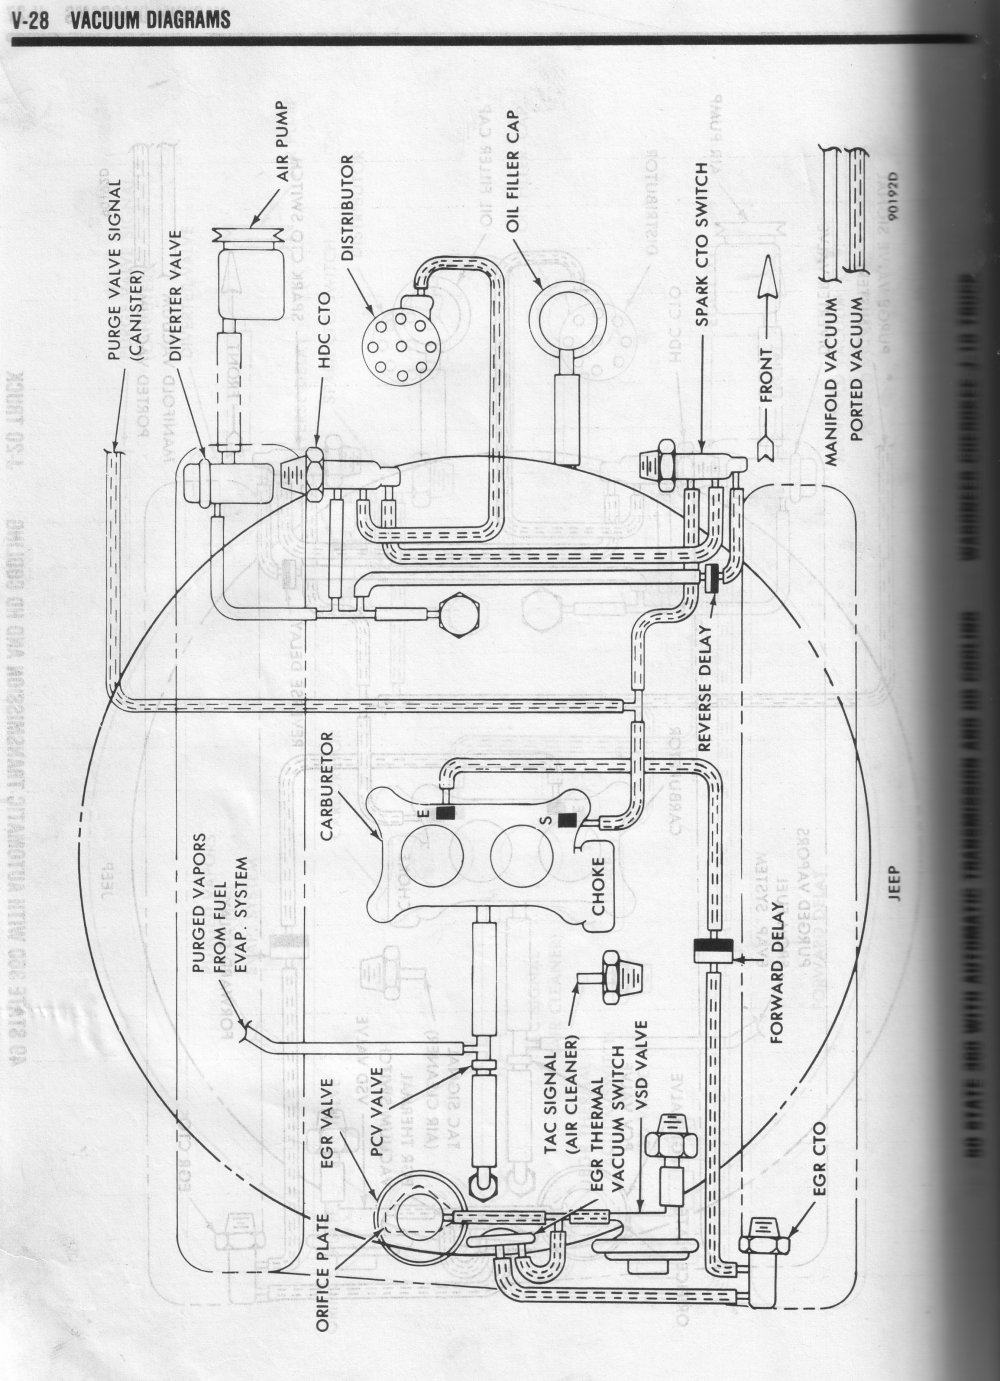 medium resolution of 60 state 360 cherokee wagoneer j10 automatic tansmission hd cooling 1980 vacuum diagrams